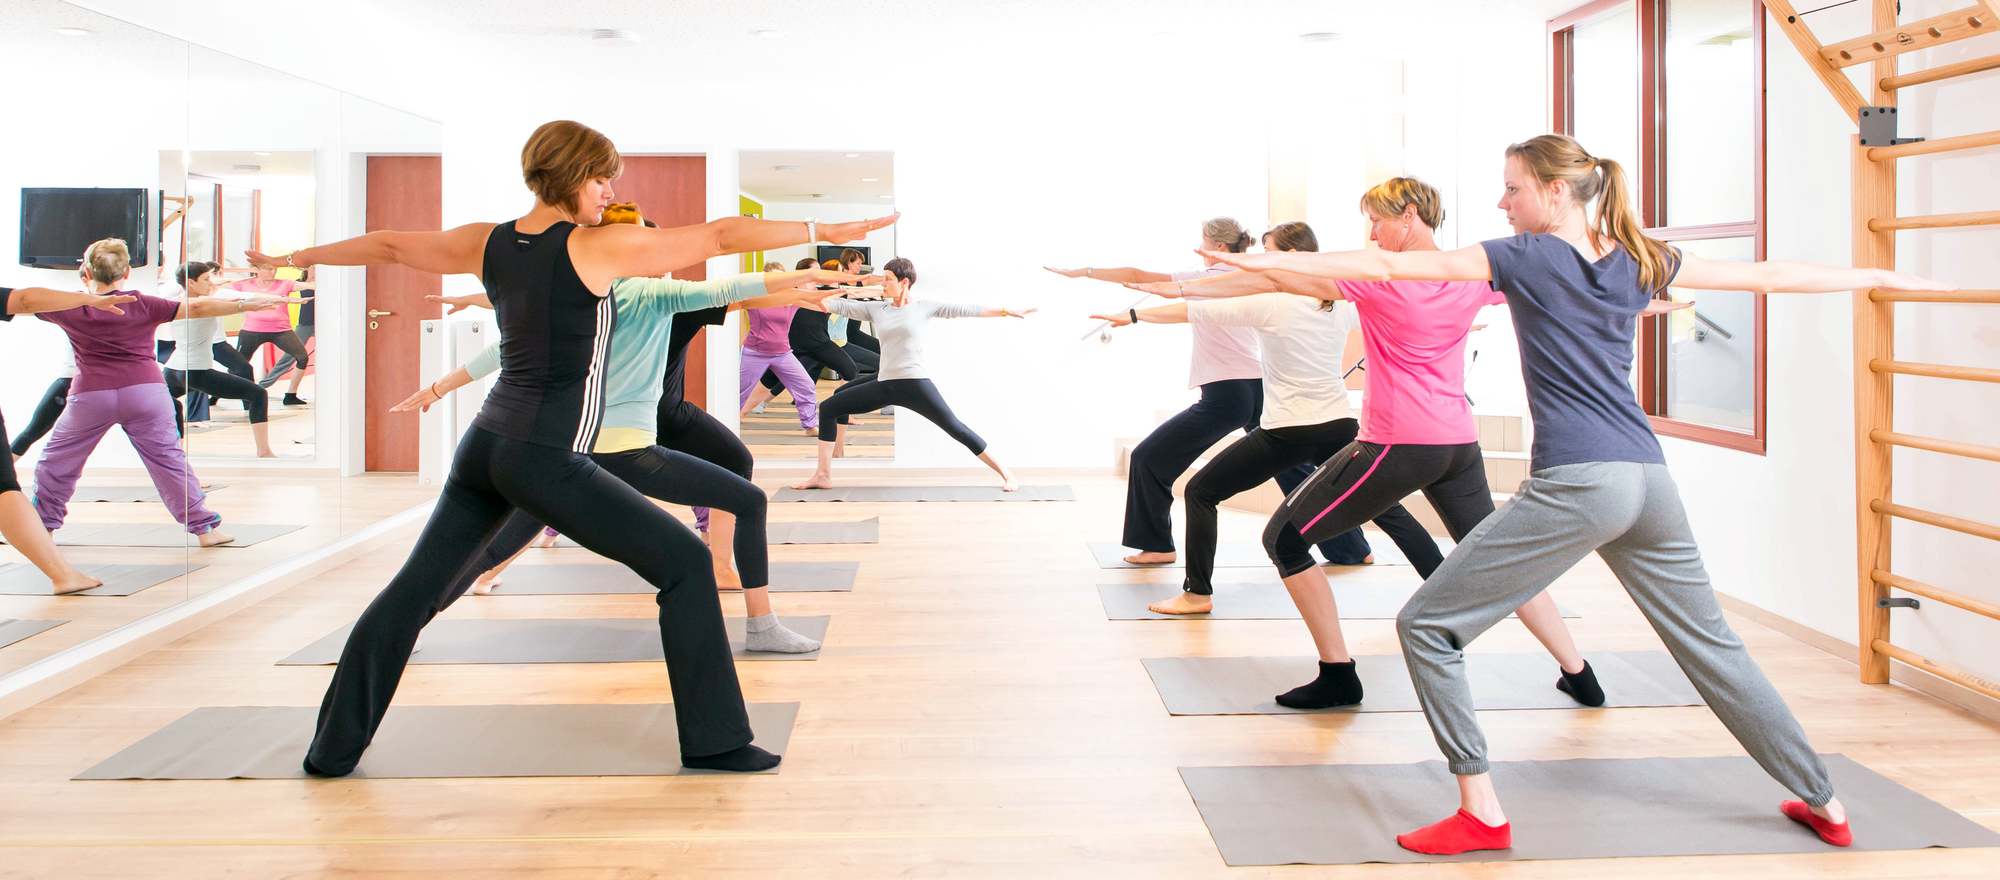 Aerobic and fitness classes at the the 4-star-superior hotel Ringhotel Teutoburger Wald in Tecklenburg